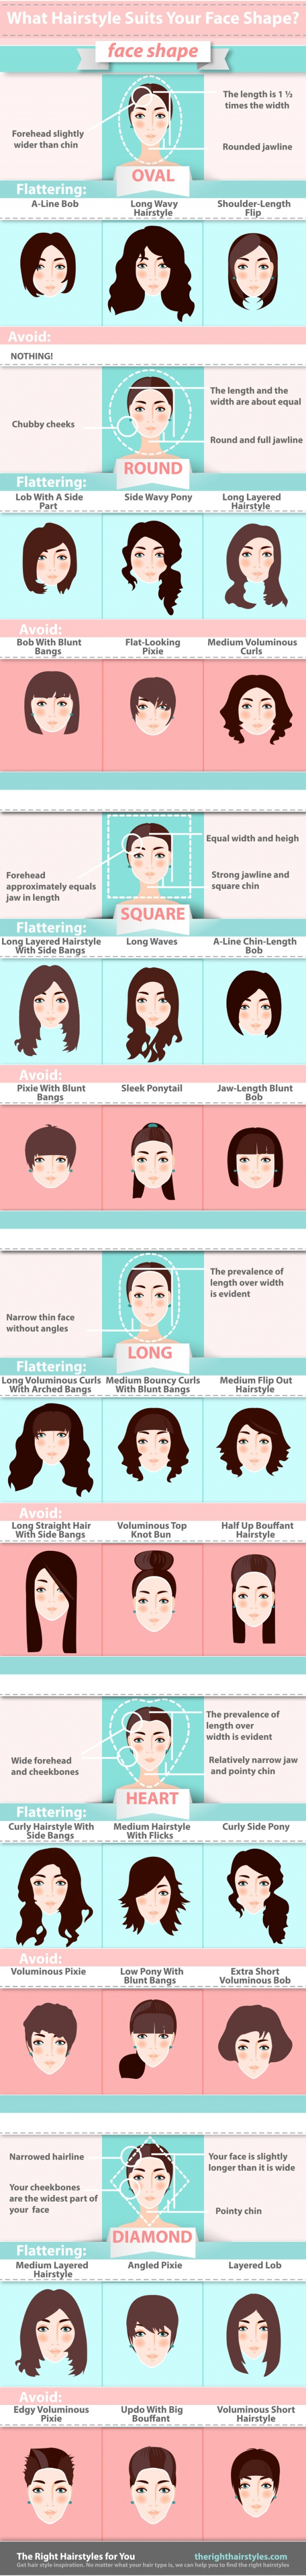 Hairstyle according to face